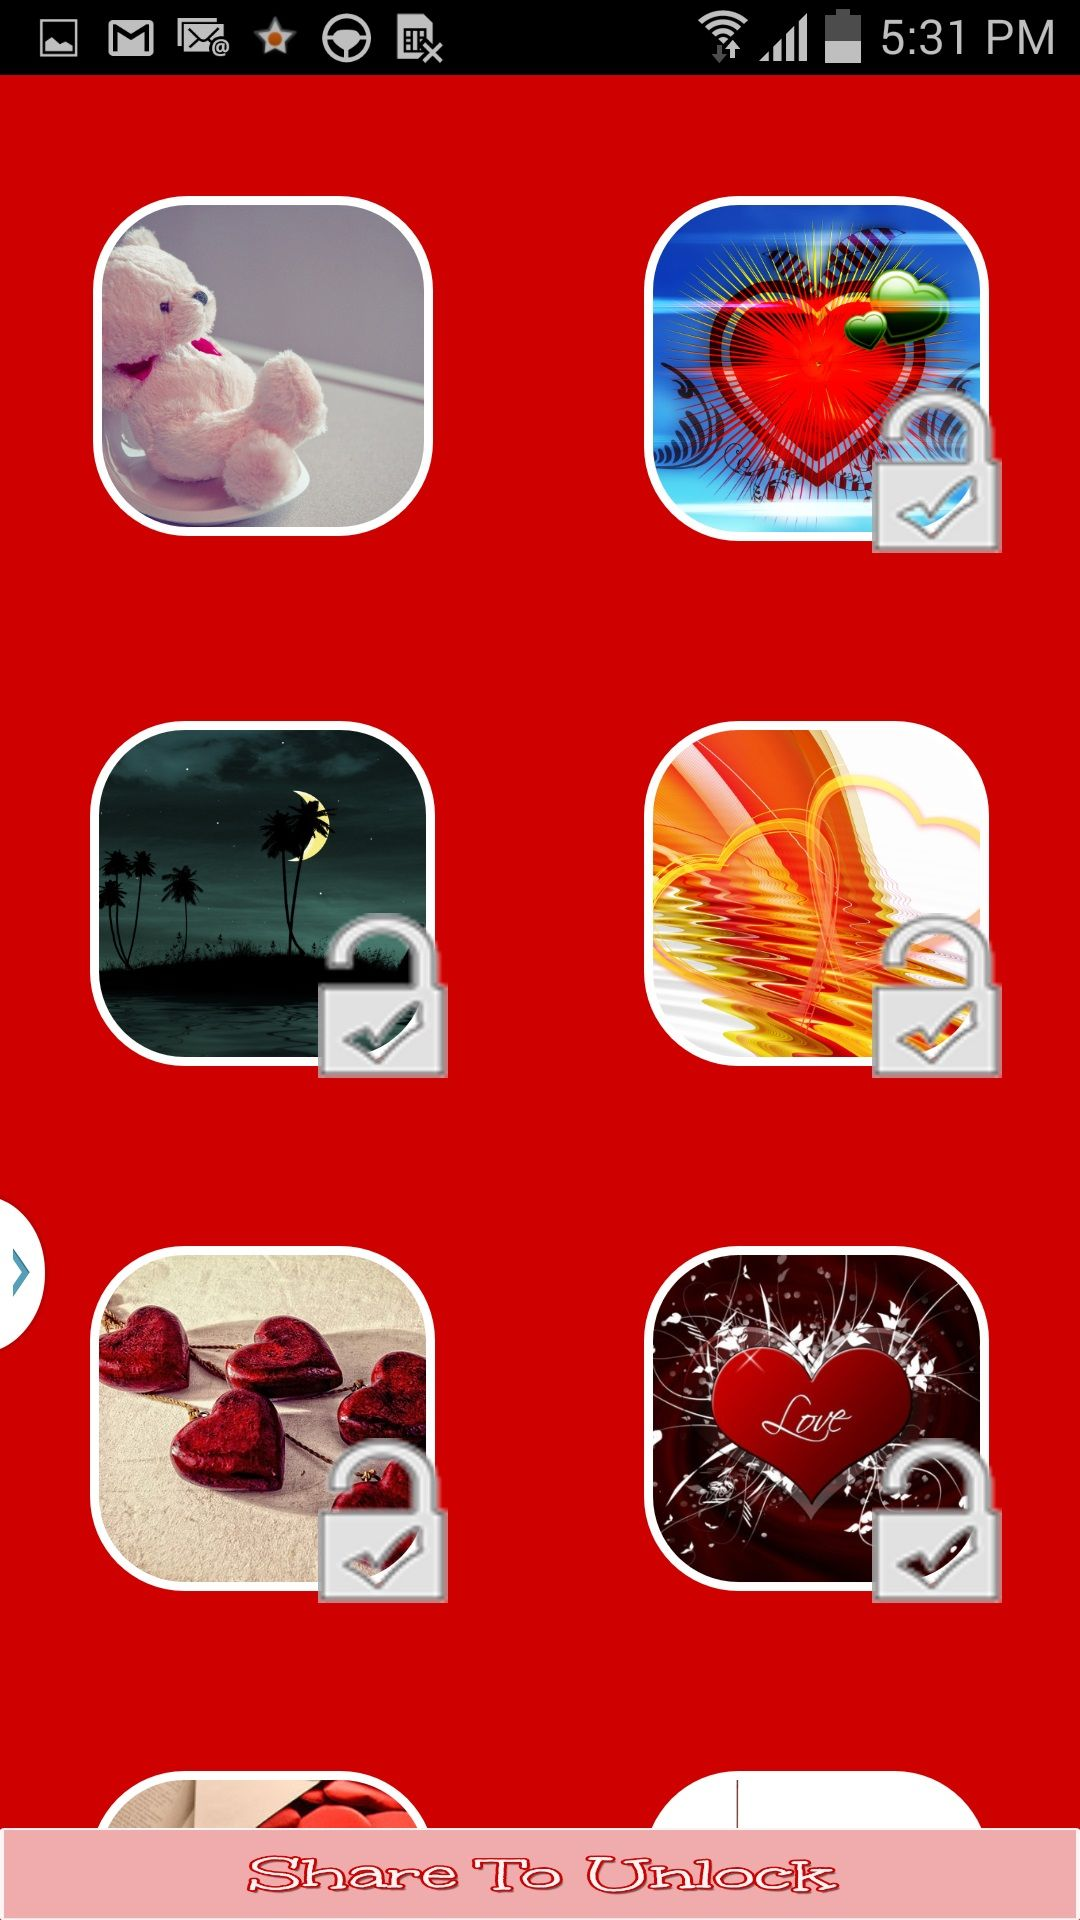 This astonishing app gets the photos of valentines and